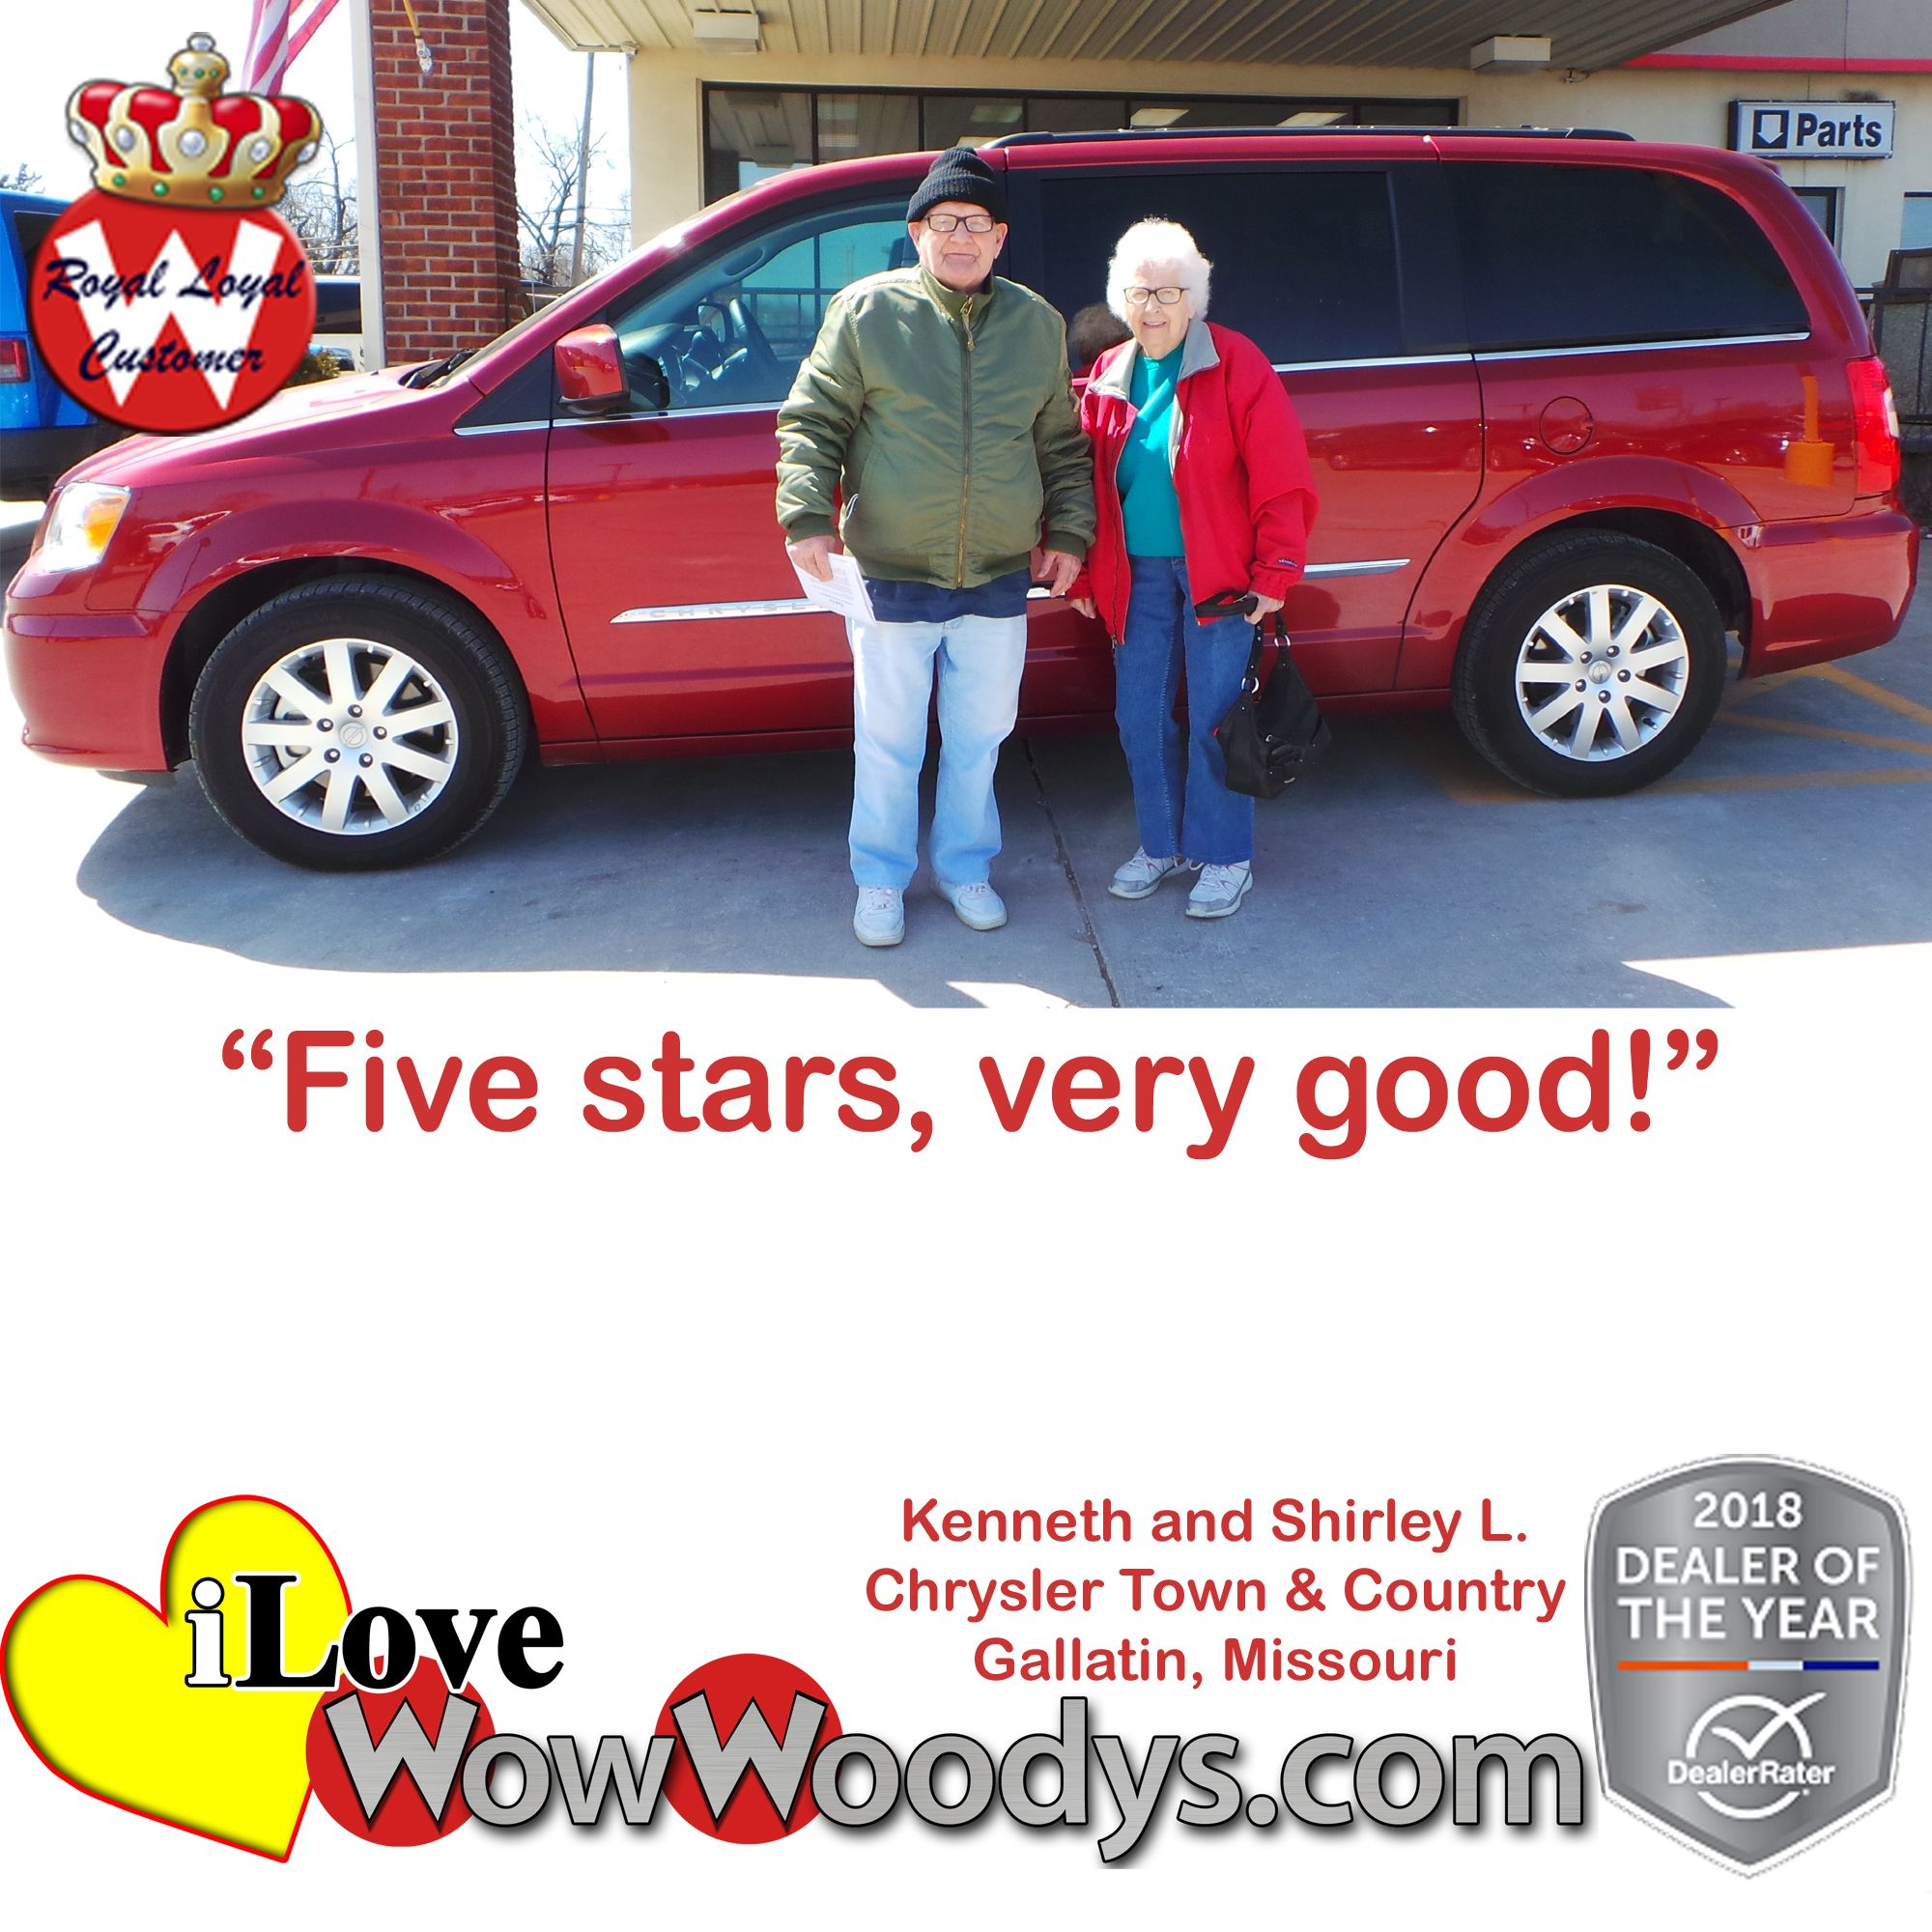 New & Used Cars For Sale in Chillicothe near Kansas City MO